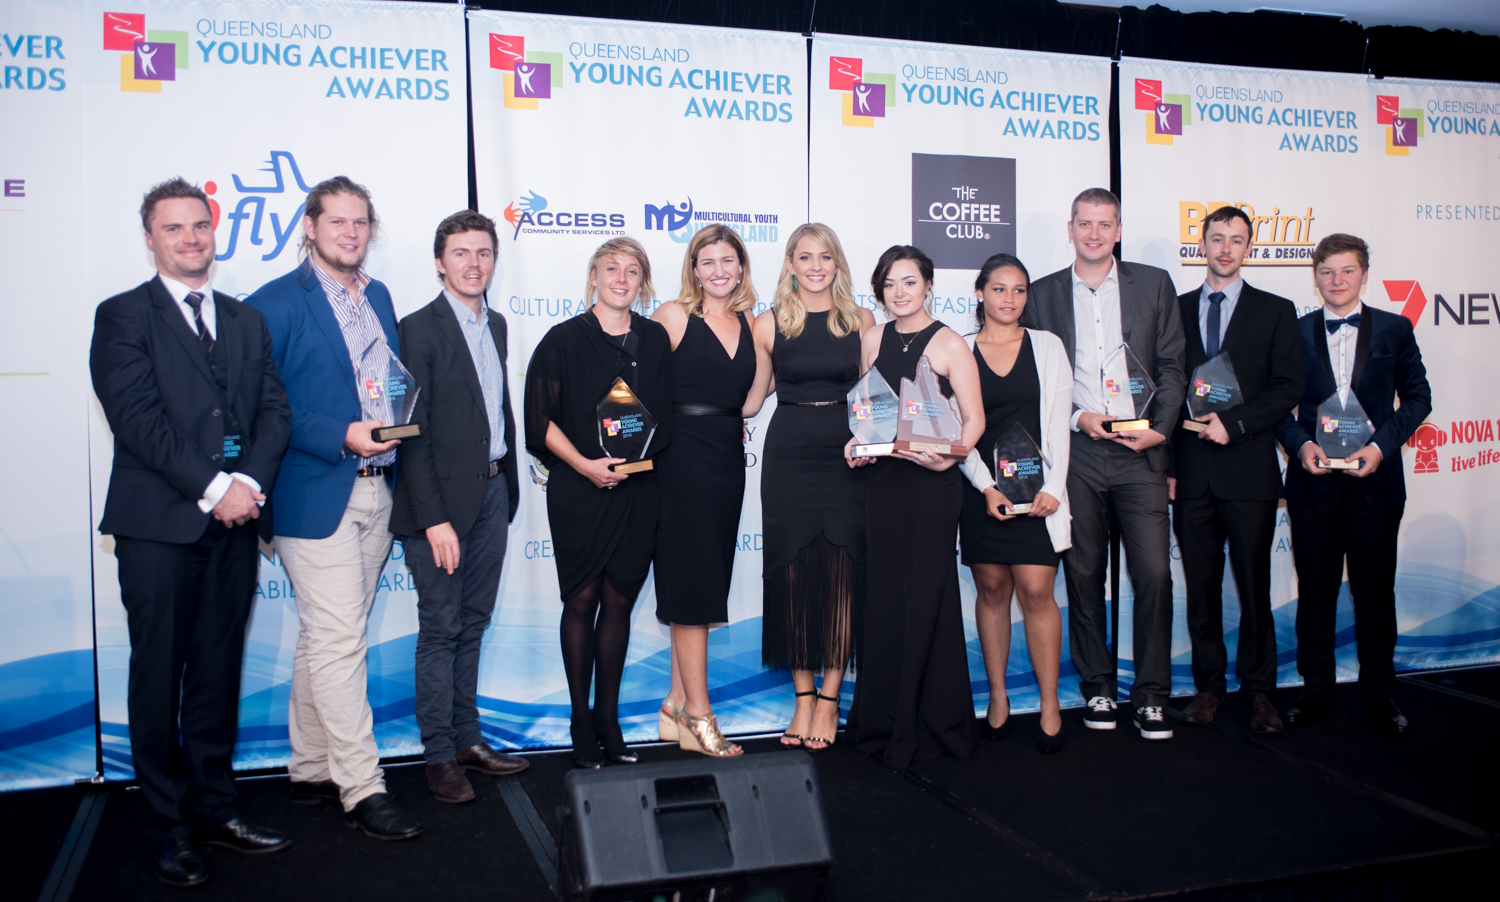 Queensland Young Achiever Award Winners